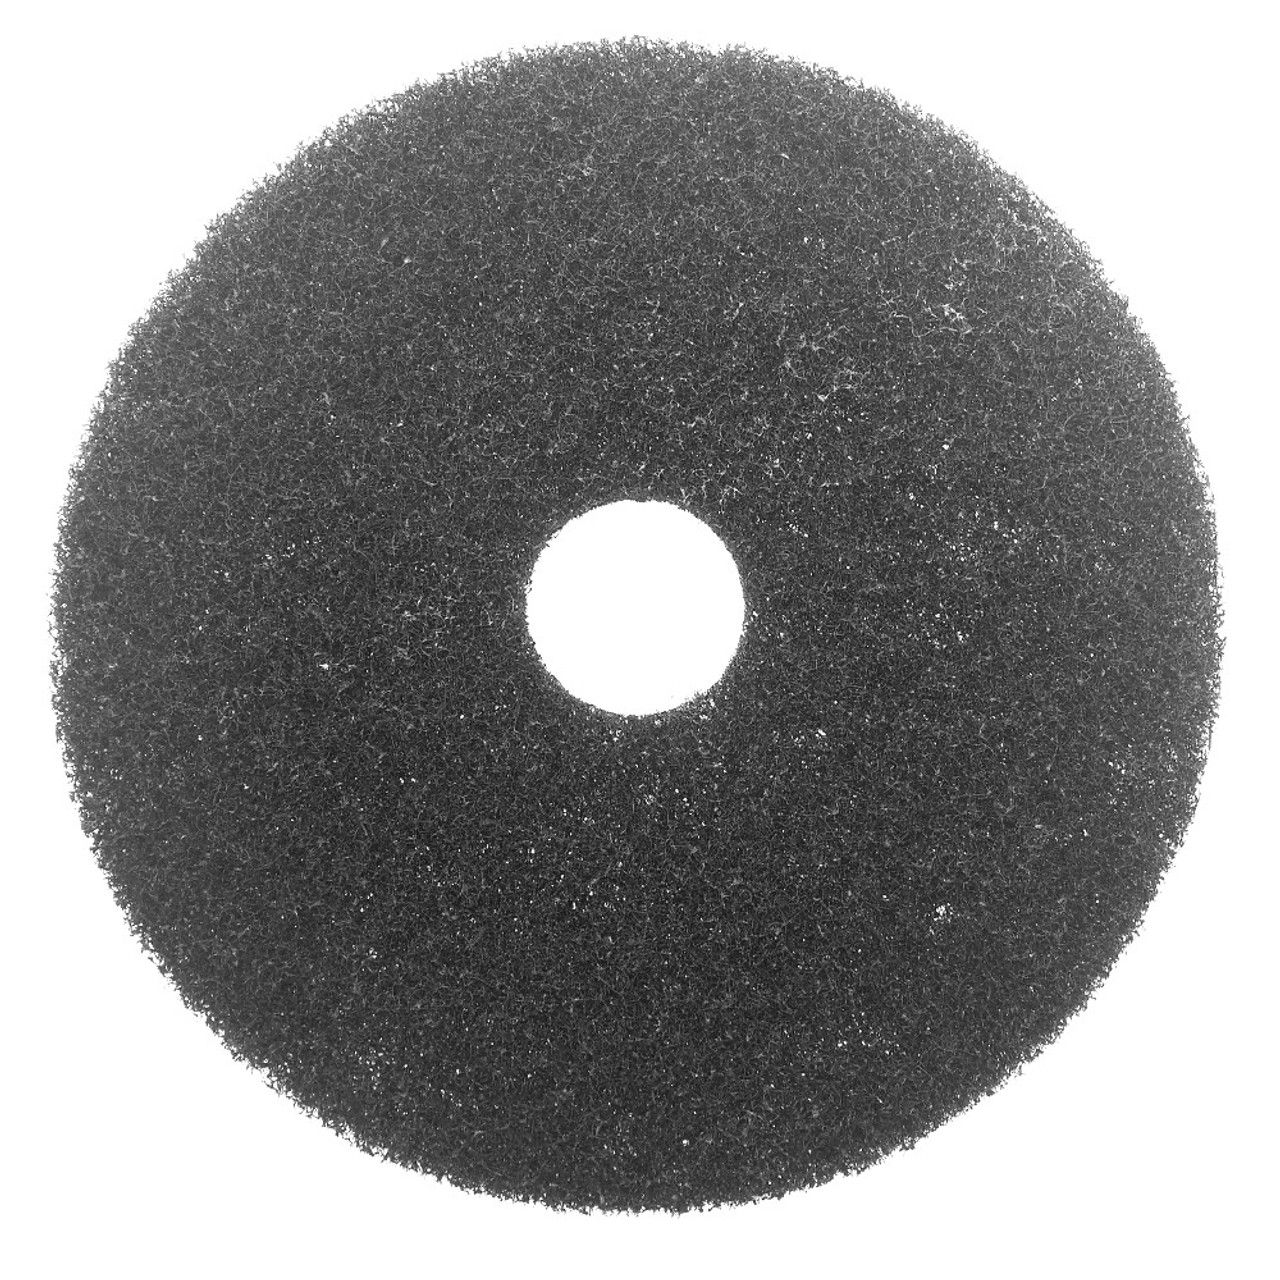 3M Hi Pro 7300 Floor Stripping Pads are 3M's most aggressive pad for stripping tough finishes.